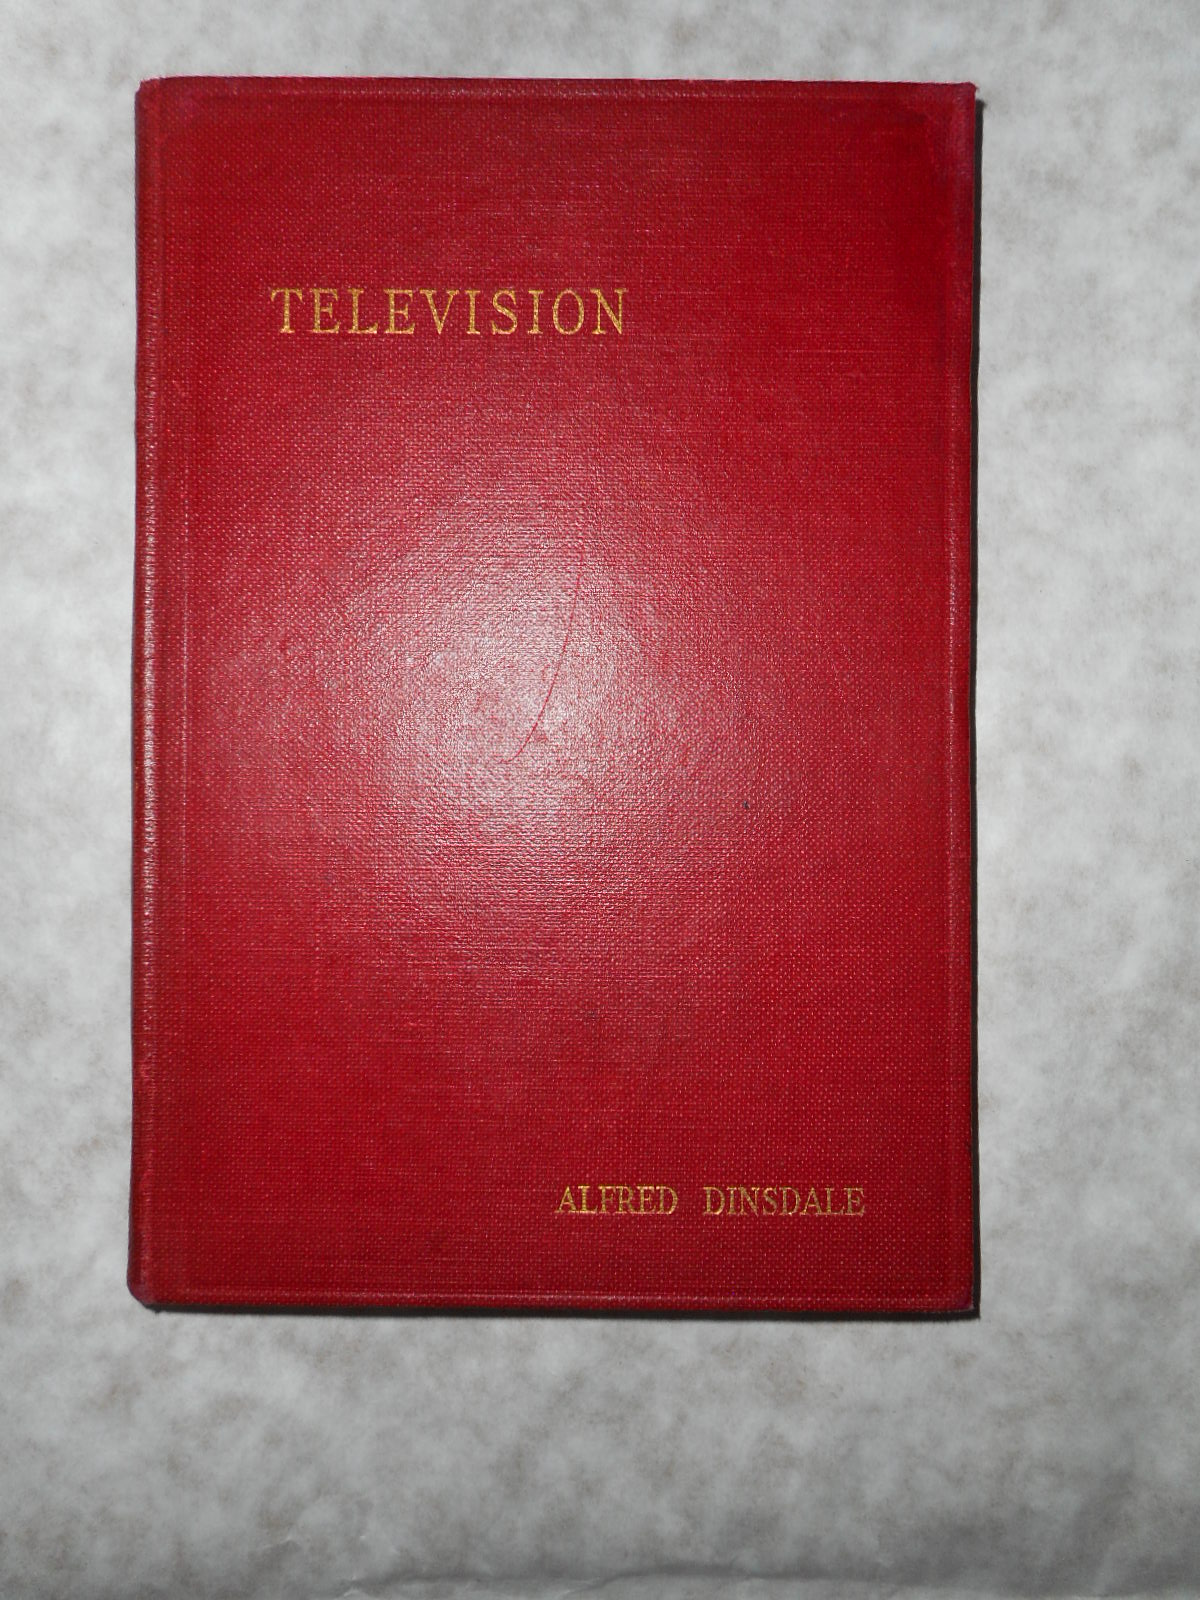 Image for Television .  First Edition.  The FIRST Book in English on TELEVISION.